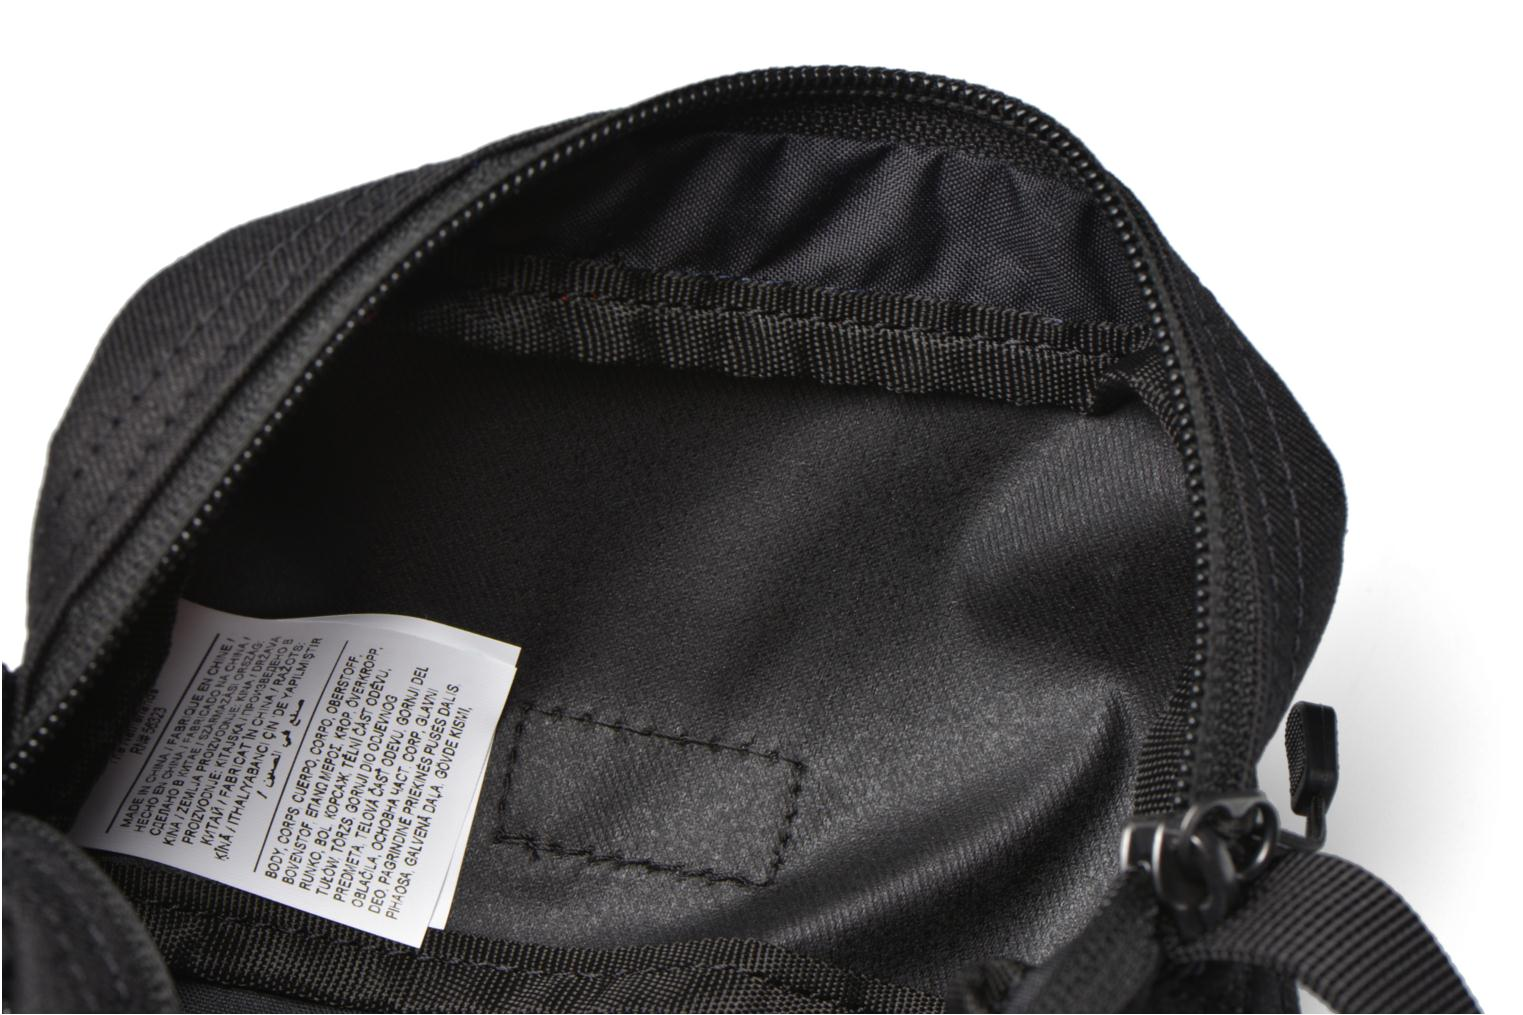 Bag Blackblackblack Tech Nike Items Nike Small wTqIv7Px7